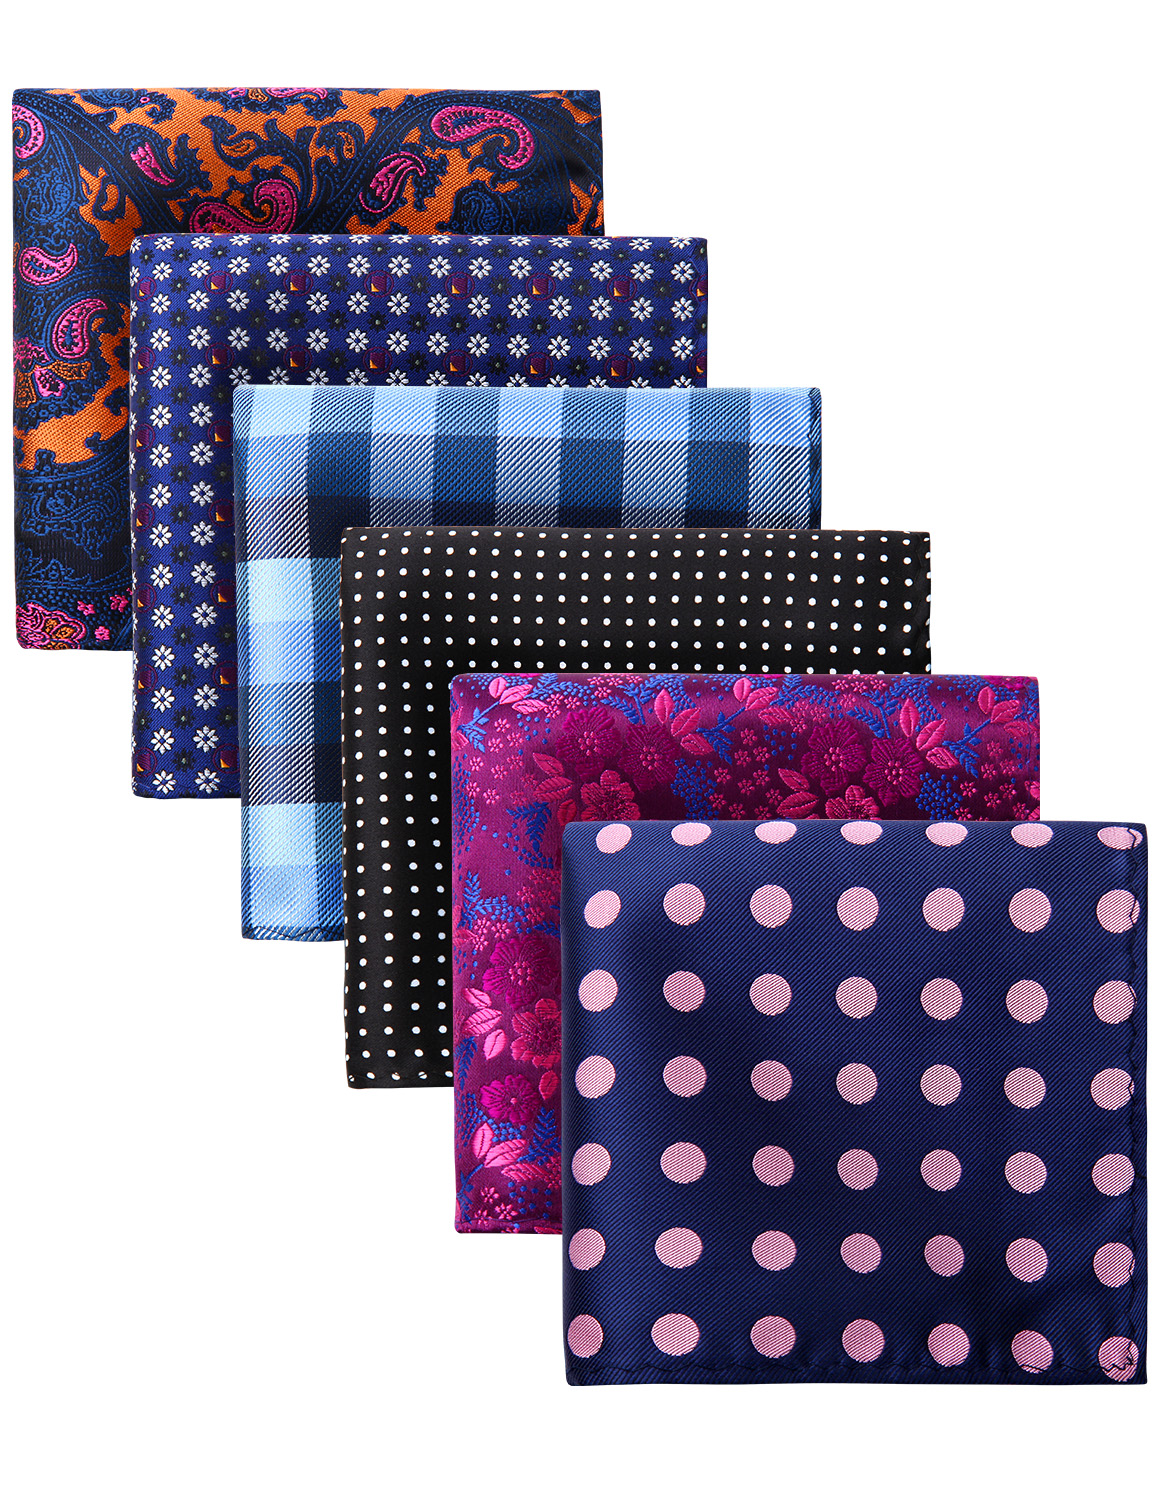 Men Fashion Pocket Square Paisley Plaid Floral 6 Pcs 25 X 25 Cm Handkerchief Wedding Party Pocket Square Gift Box Set